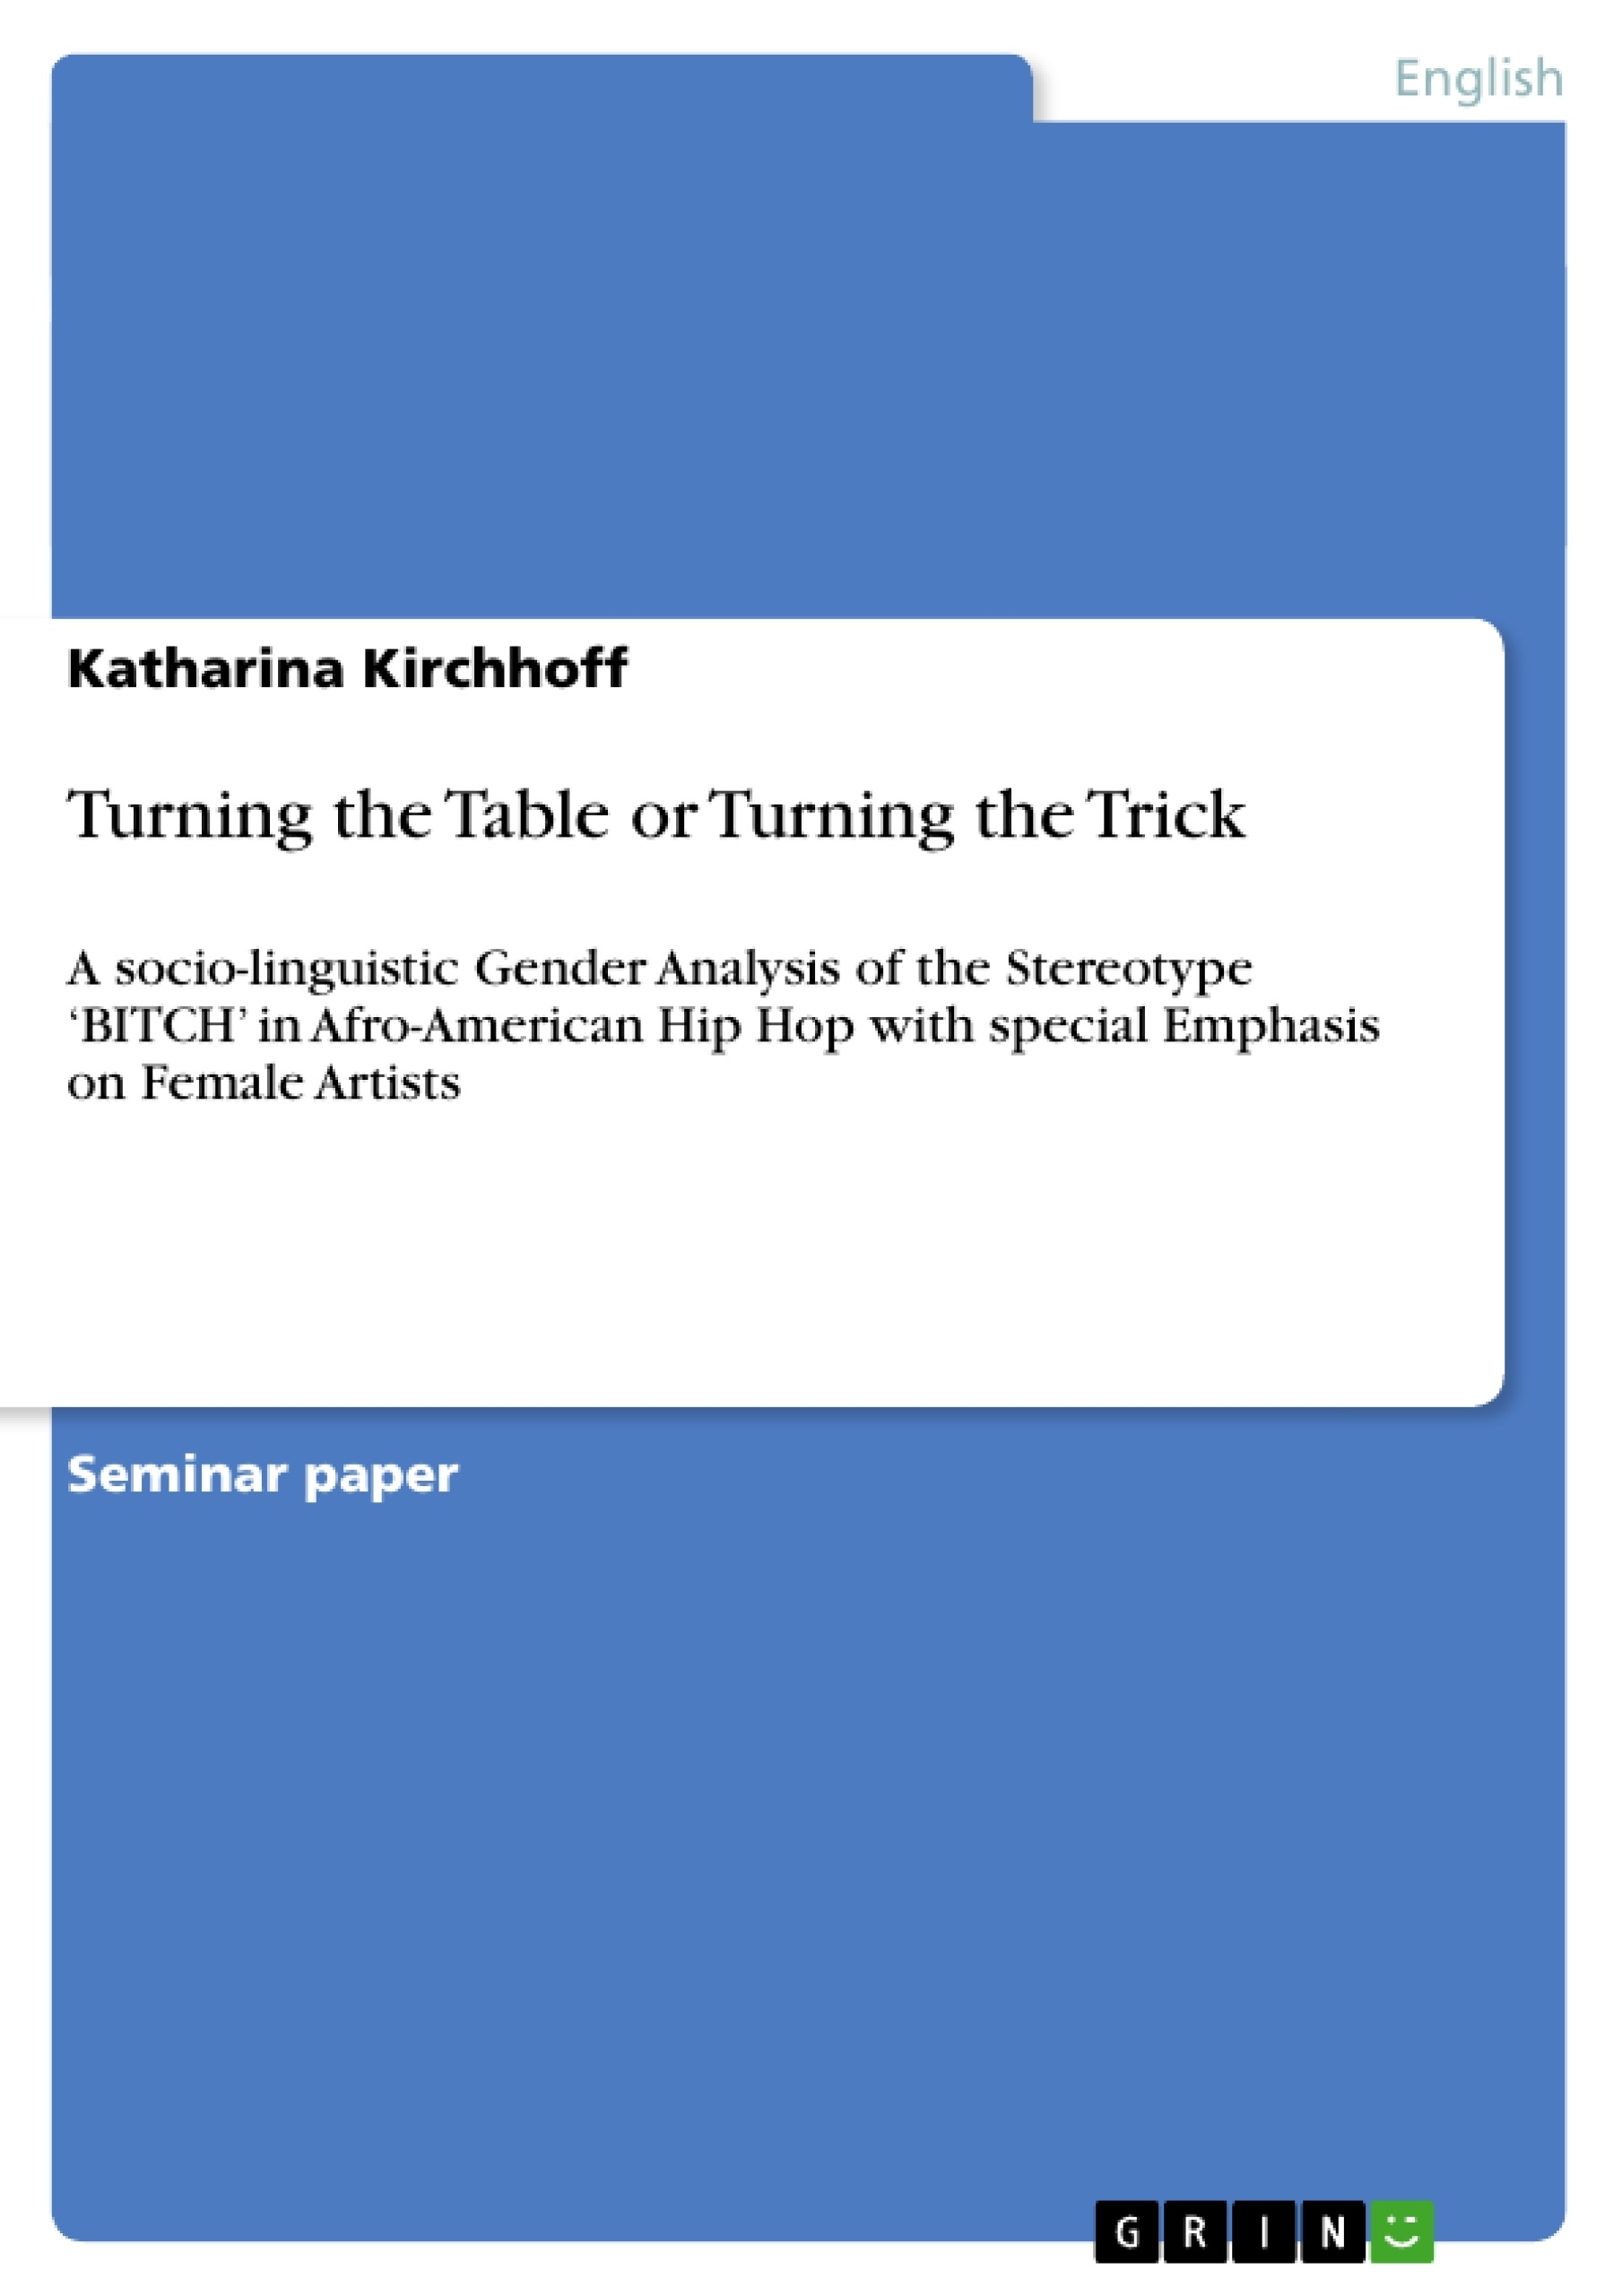 Title: Turning the Table or Turning the Trick